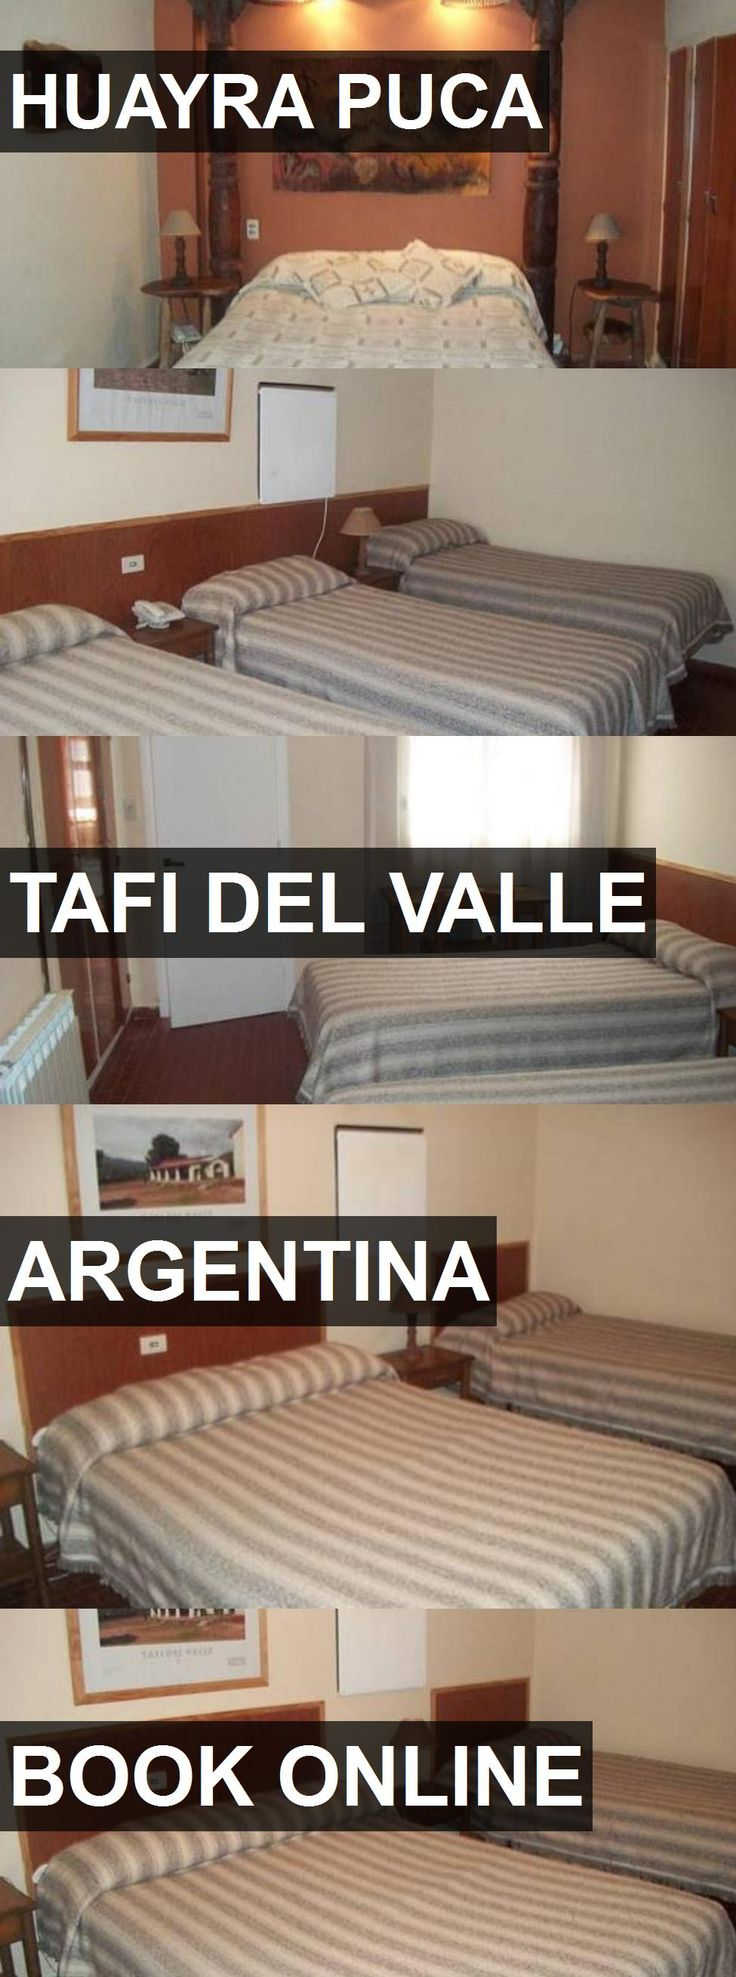 Hotel HUAYRA PUCA in Tafi del Valle, Argentina. For more information, photos, reviews and best prices please follow the link. #Argentina #TafidelValle #travel #vacation #hotel